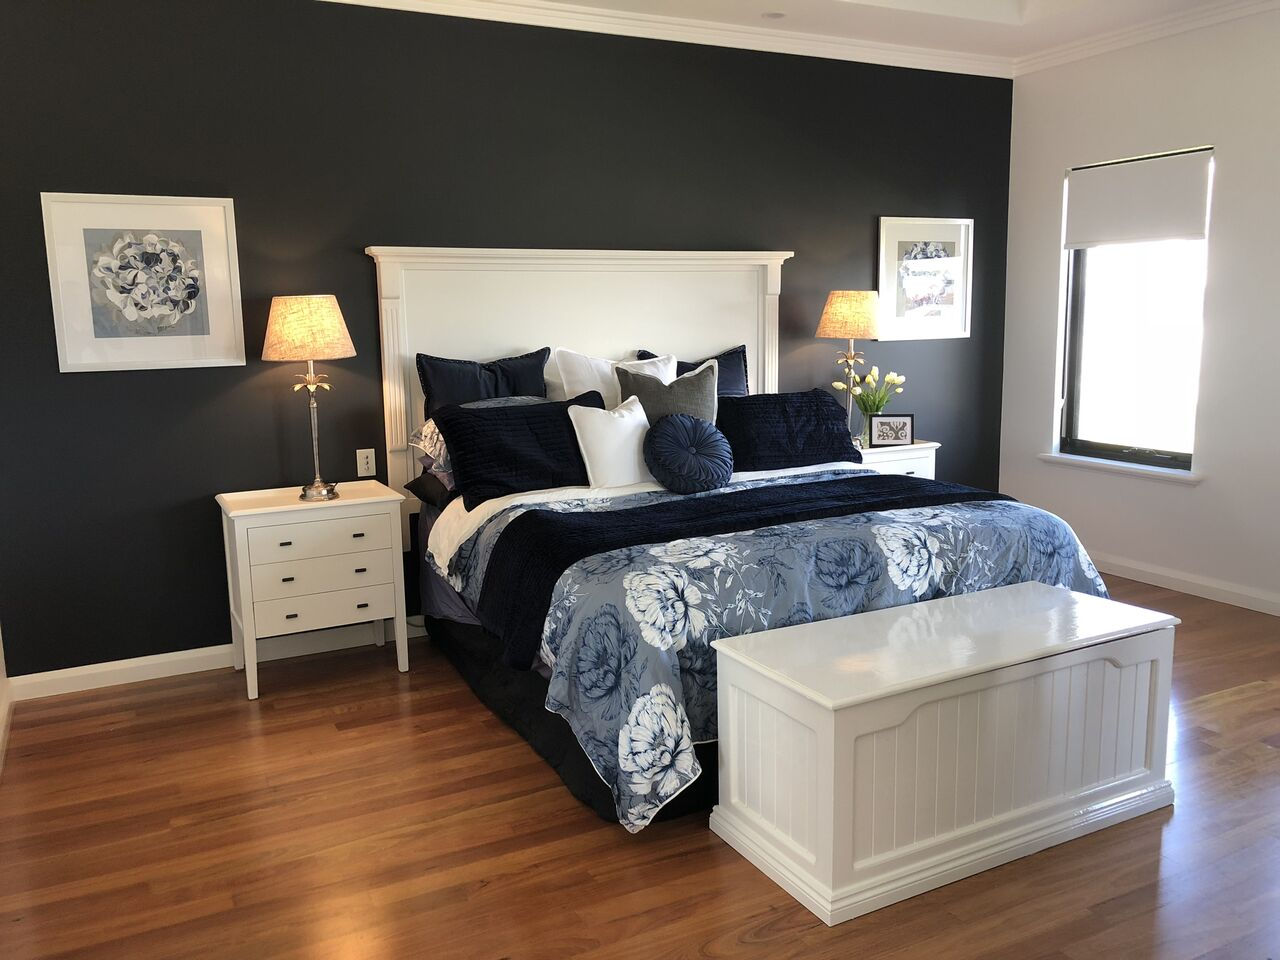 After: The Master Bedroom